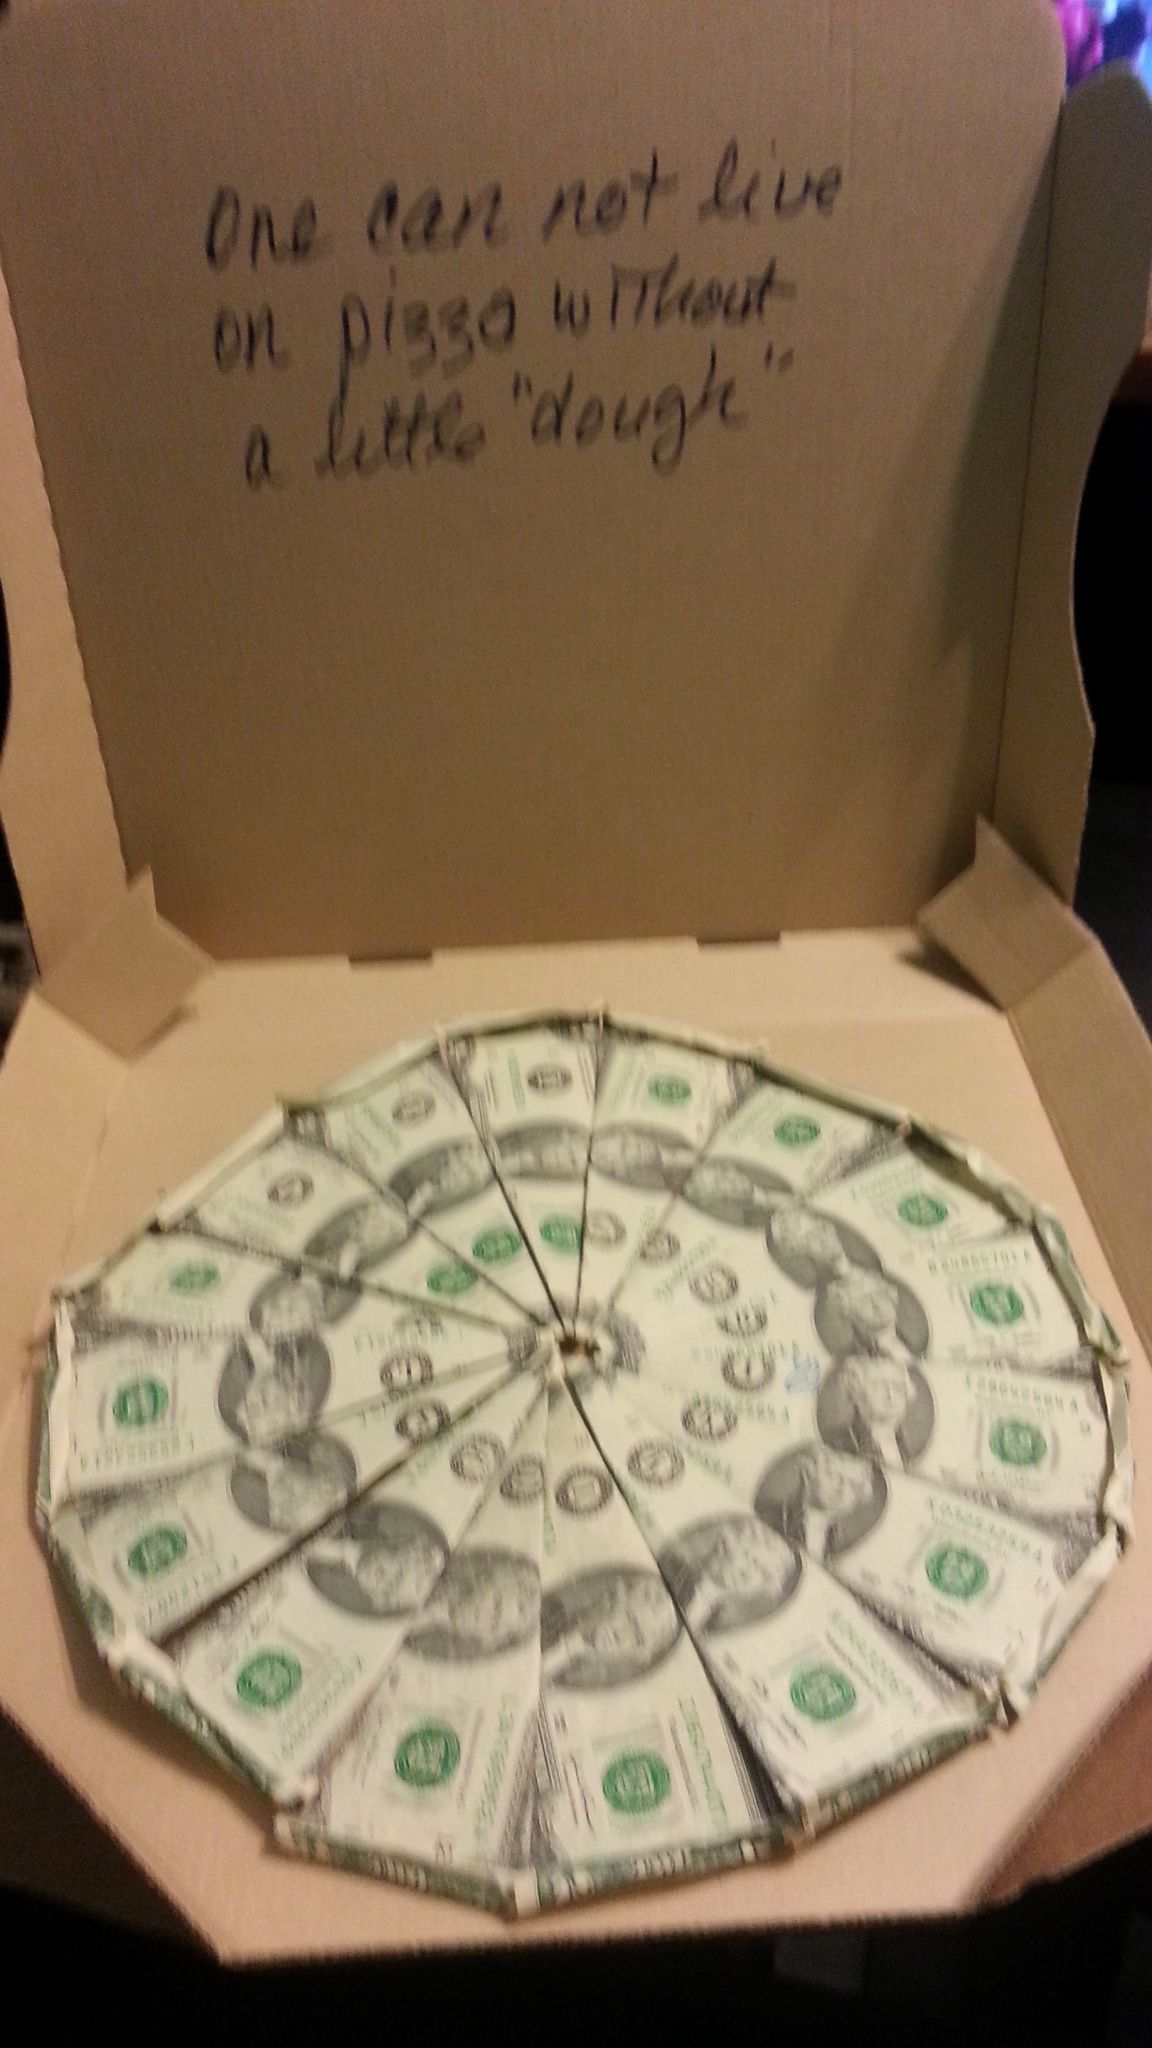 Made With 2 Dollar Bills And An Empty Pizza Box 16 Slices Cost 24 00 Cash Box Free No